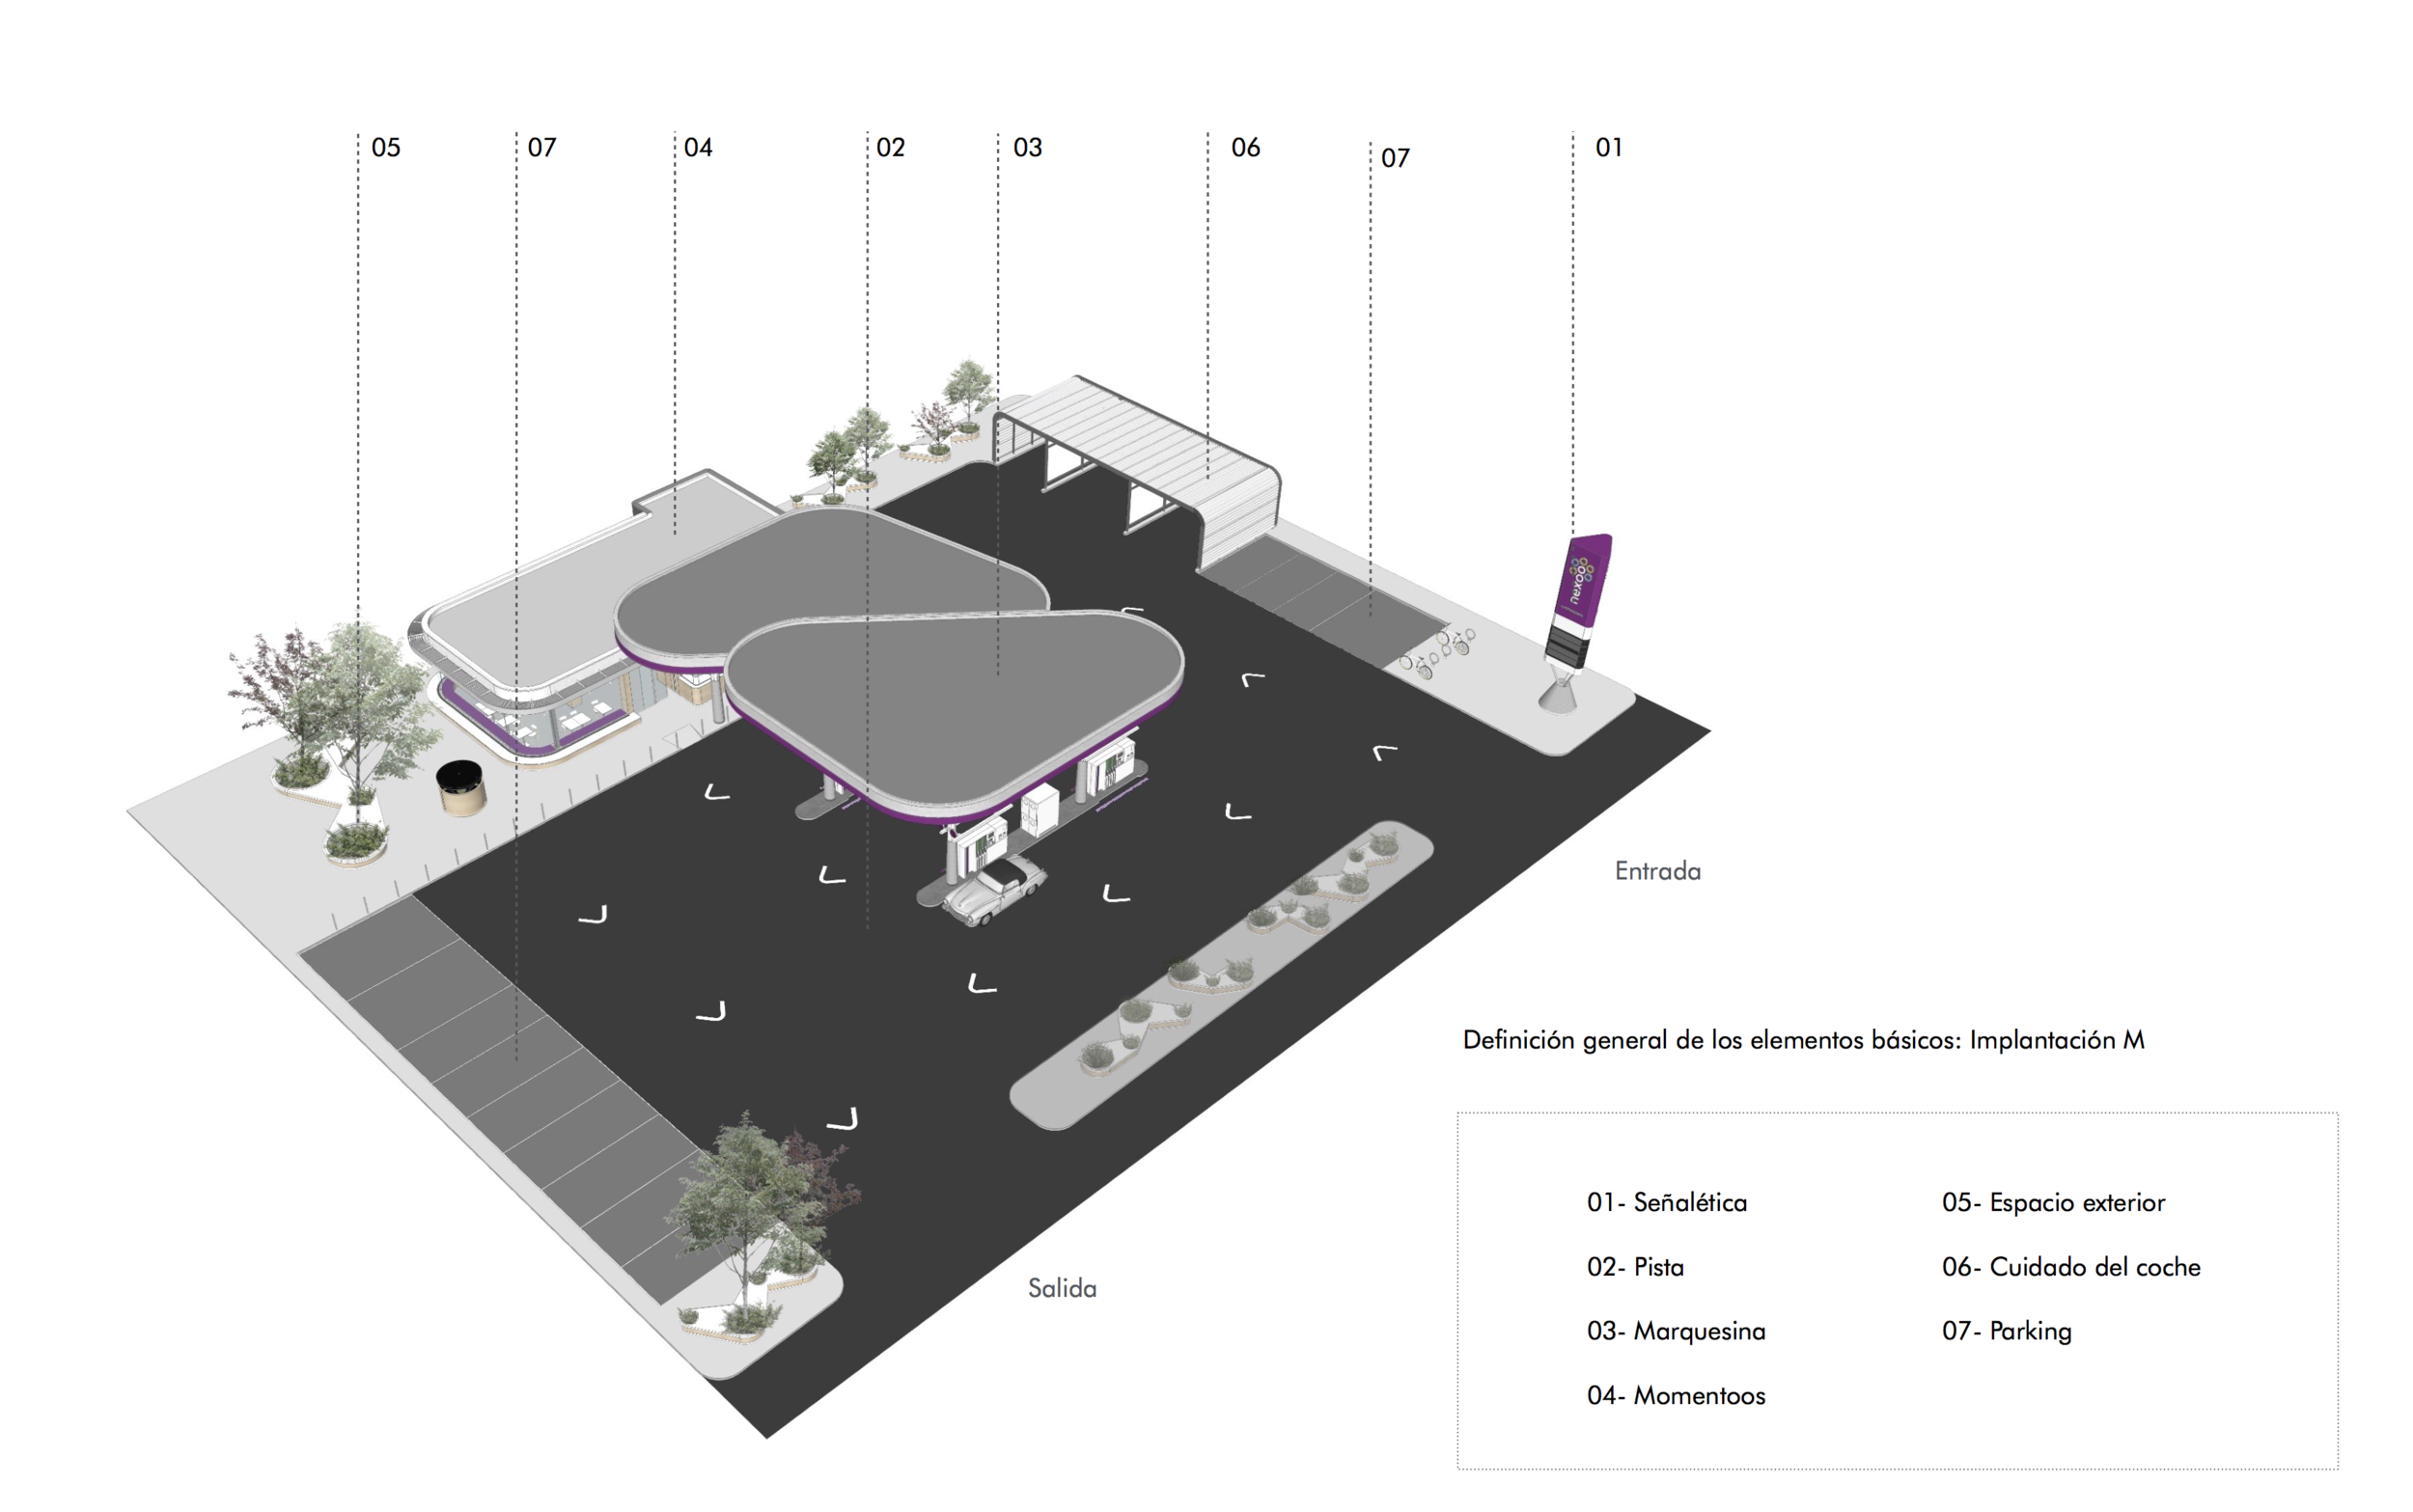 Layout - The stylebook shows three sizes of Service station with different pump positions.